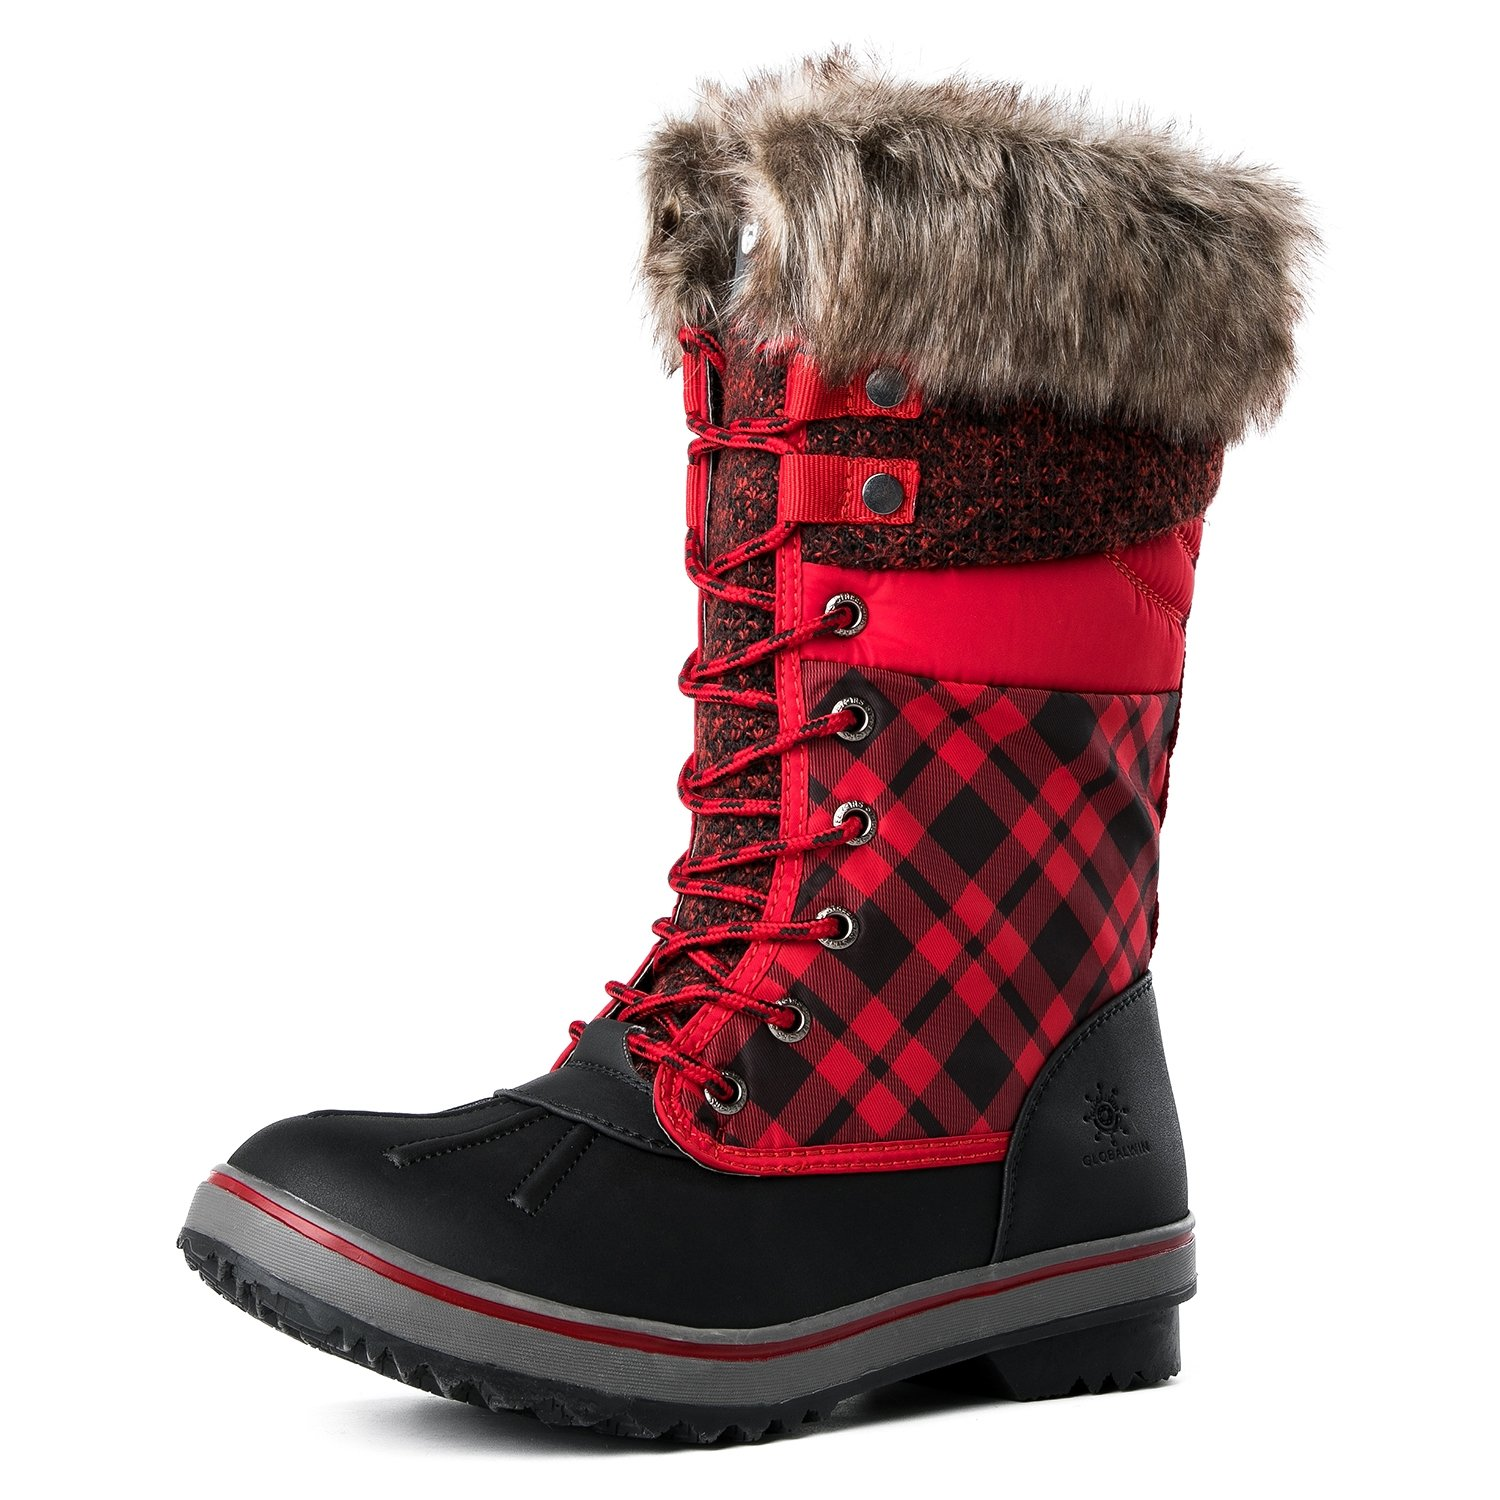 Global Win GLOBALWIN Women's 1730 Winter Snow Boots B075DGJDCJ 8.5 B(M) US|1733black/Red